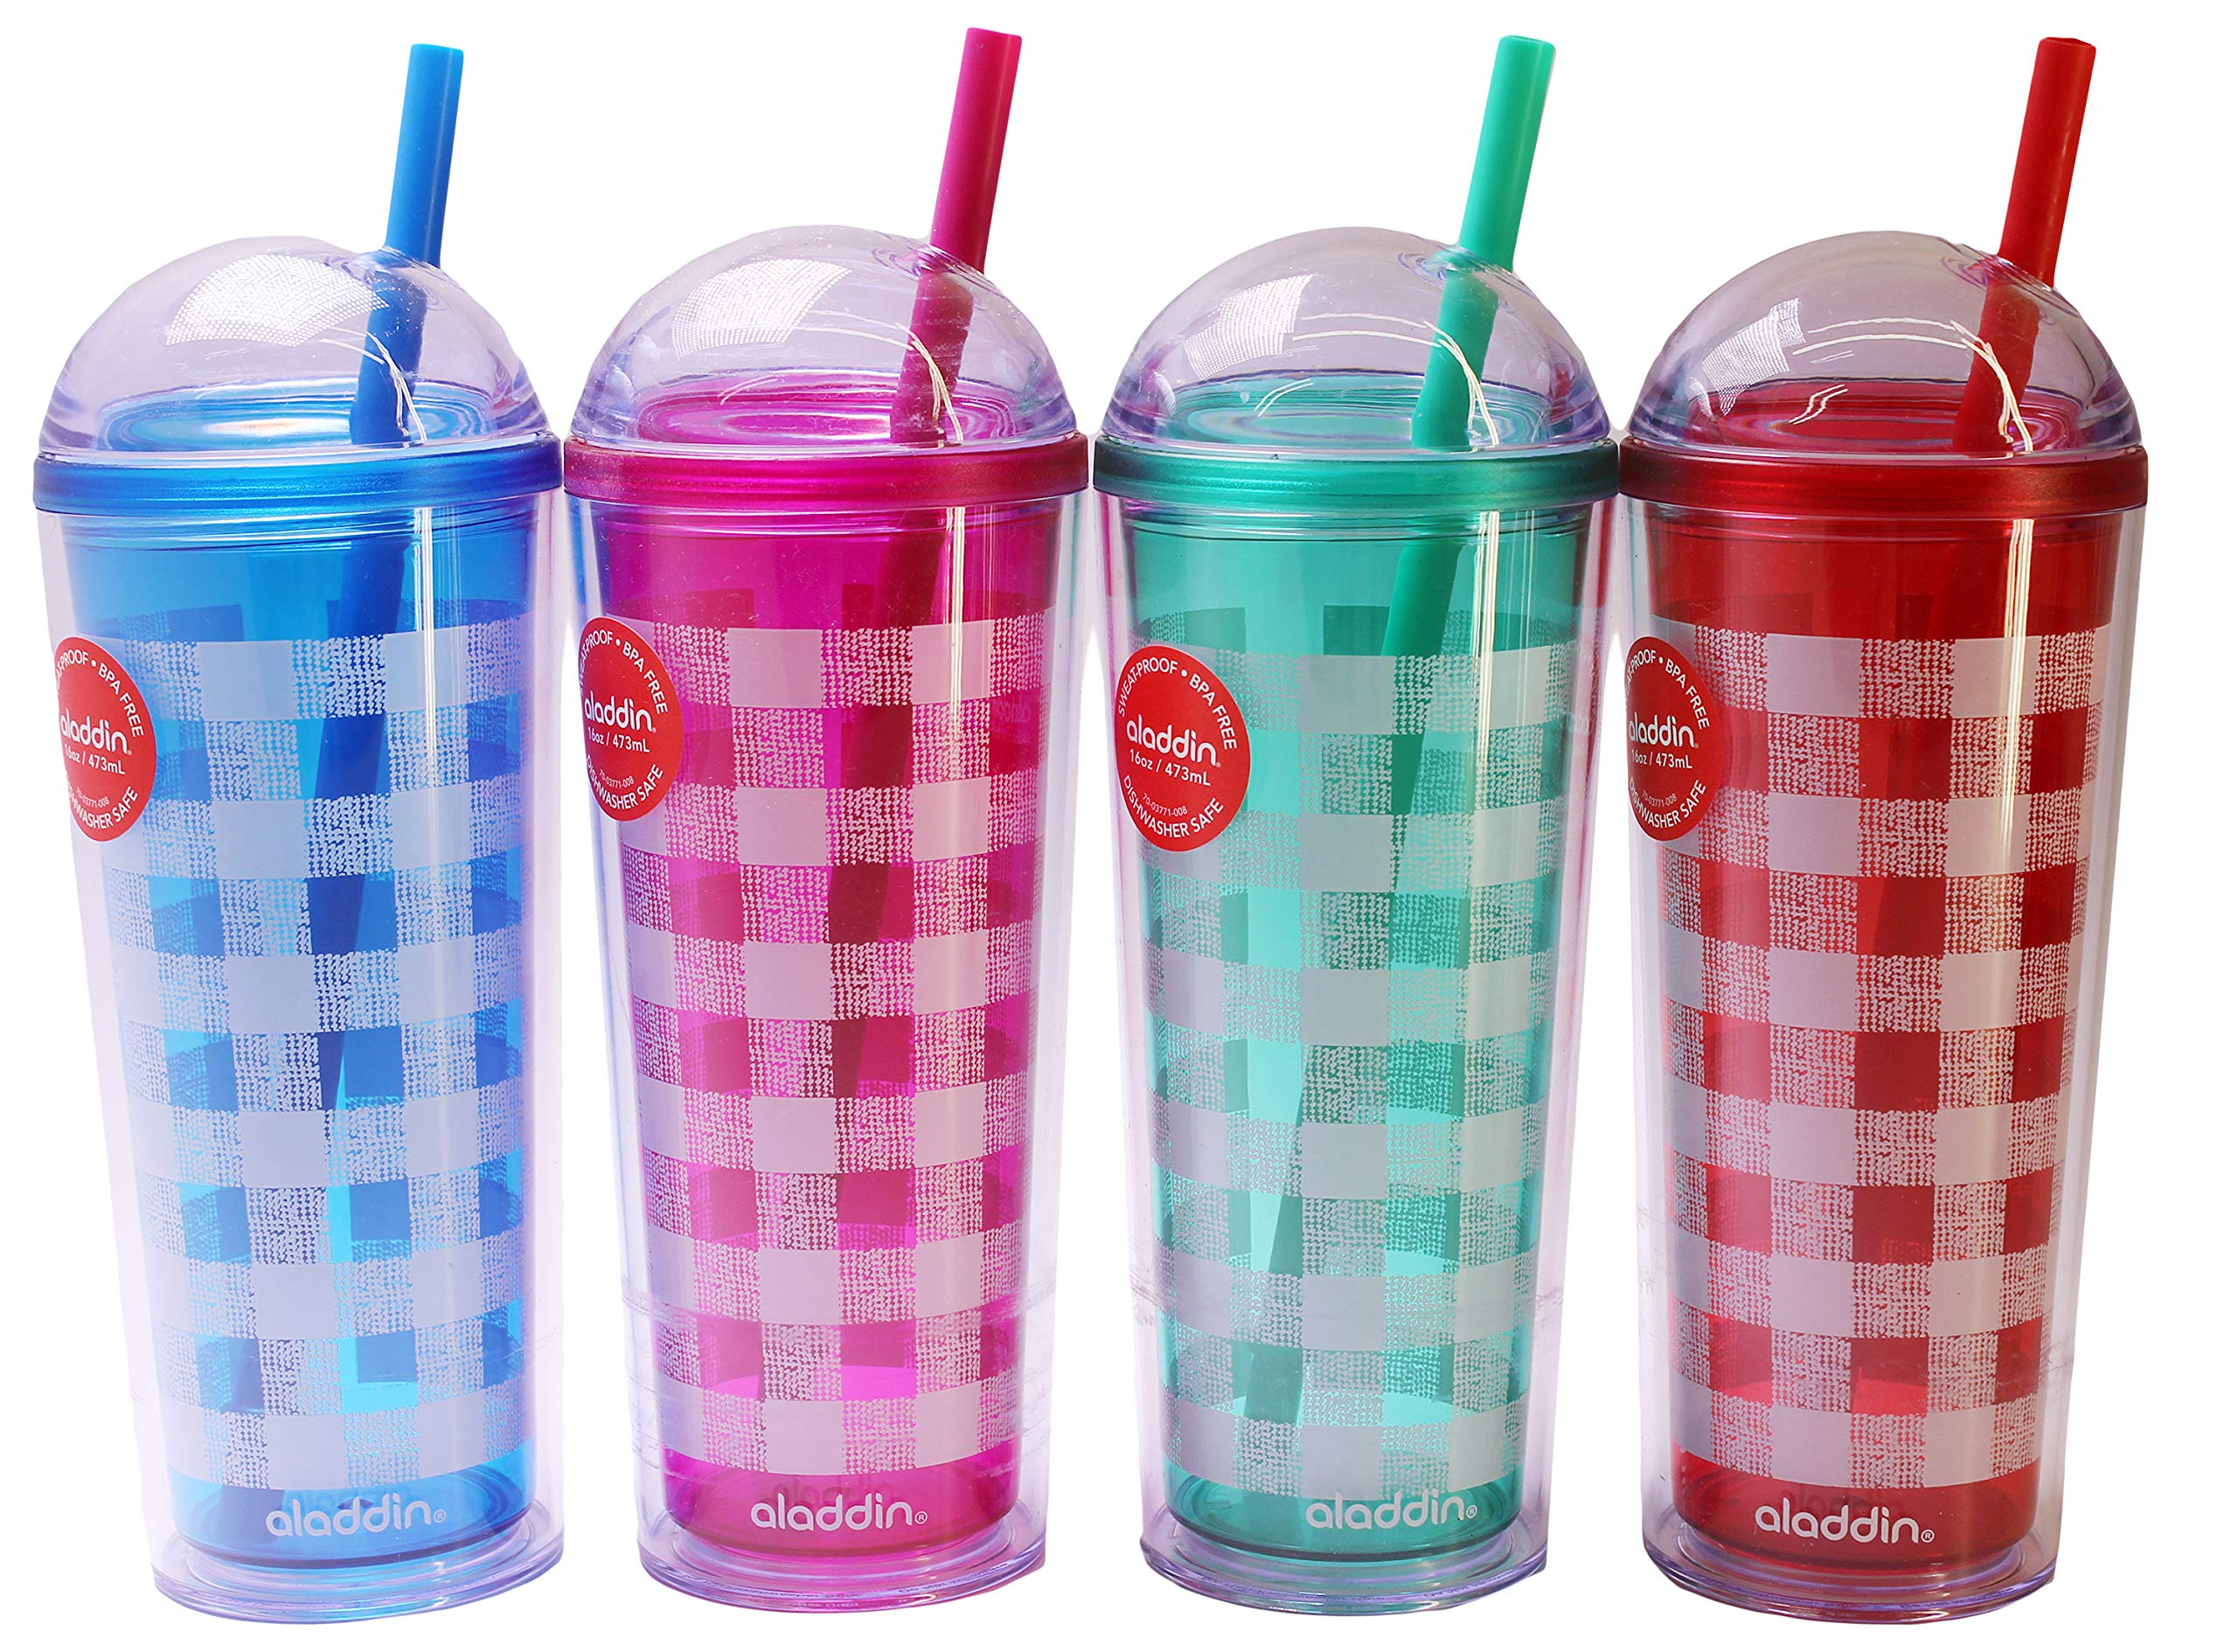 Aladdin Fountain Tumblers, Assorted Colors, 16 Ounce (Pack of 4)